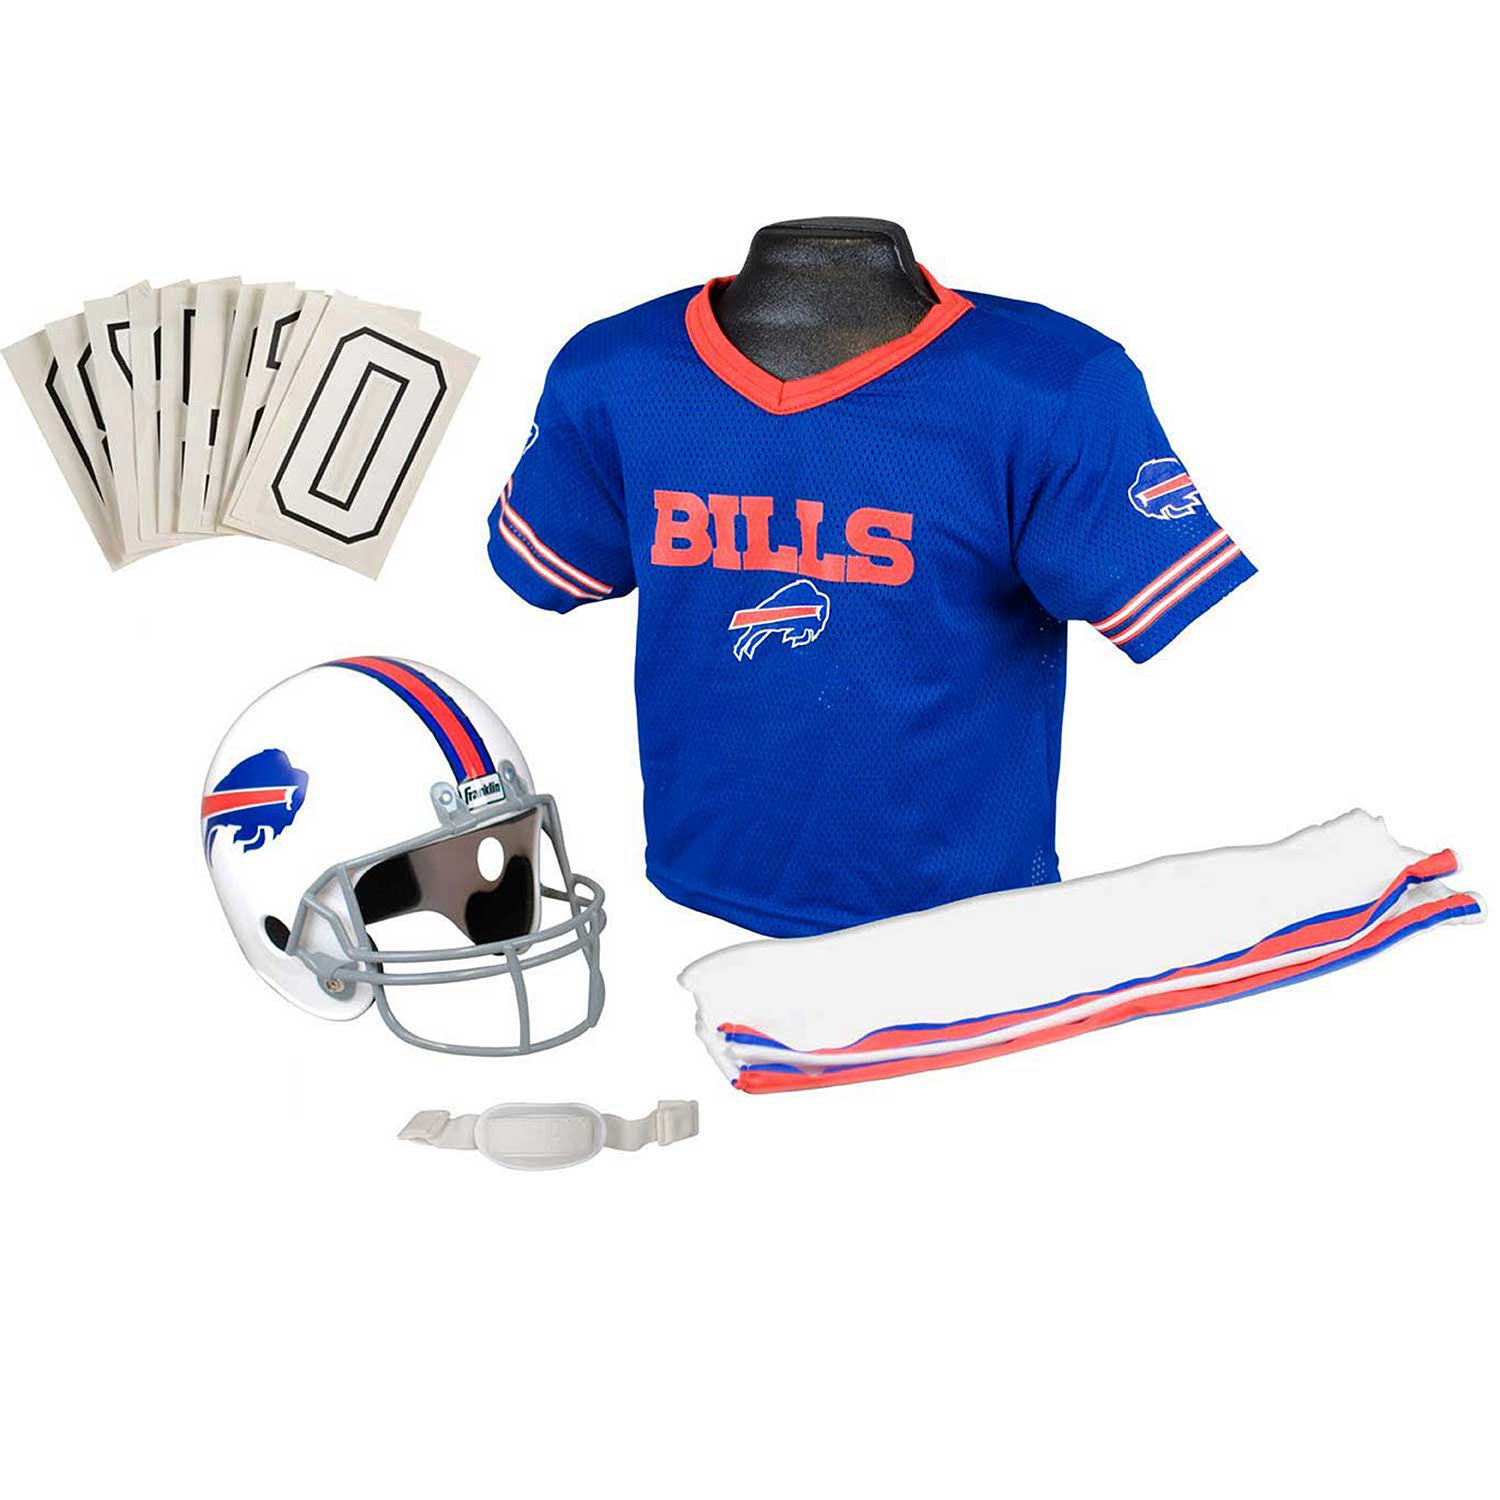 724047179e3 Galleon - Franklin Sports NFL Buffalo Bills Youth Licensed Deluxe Uniform  Set, Large